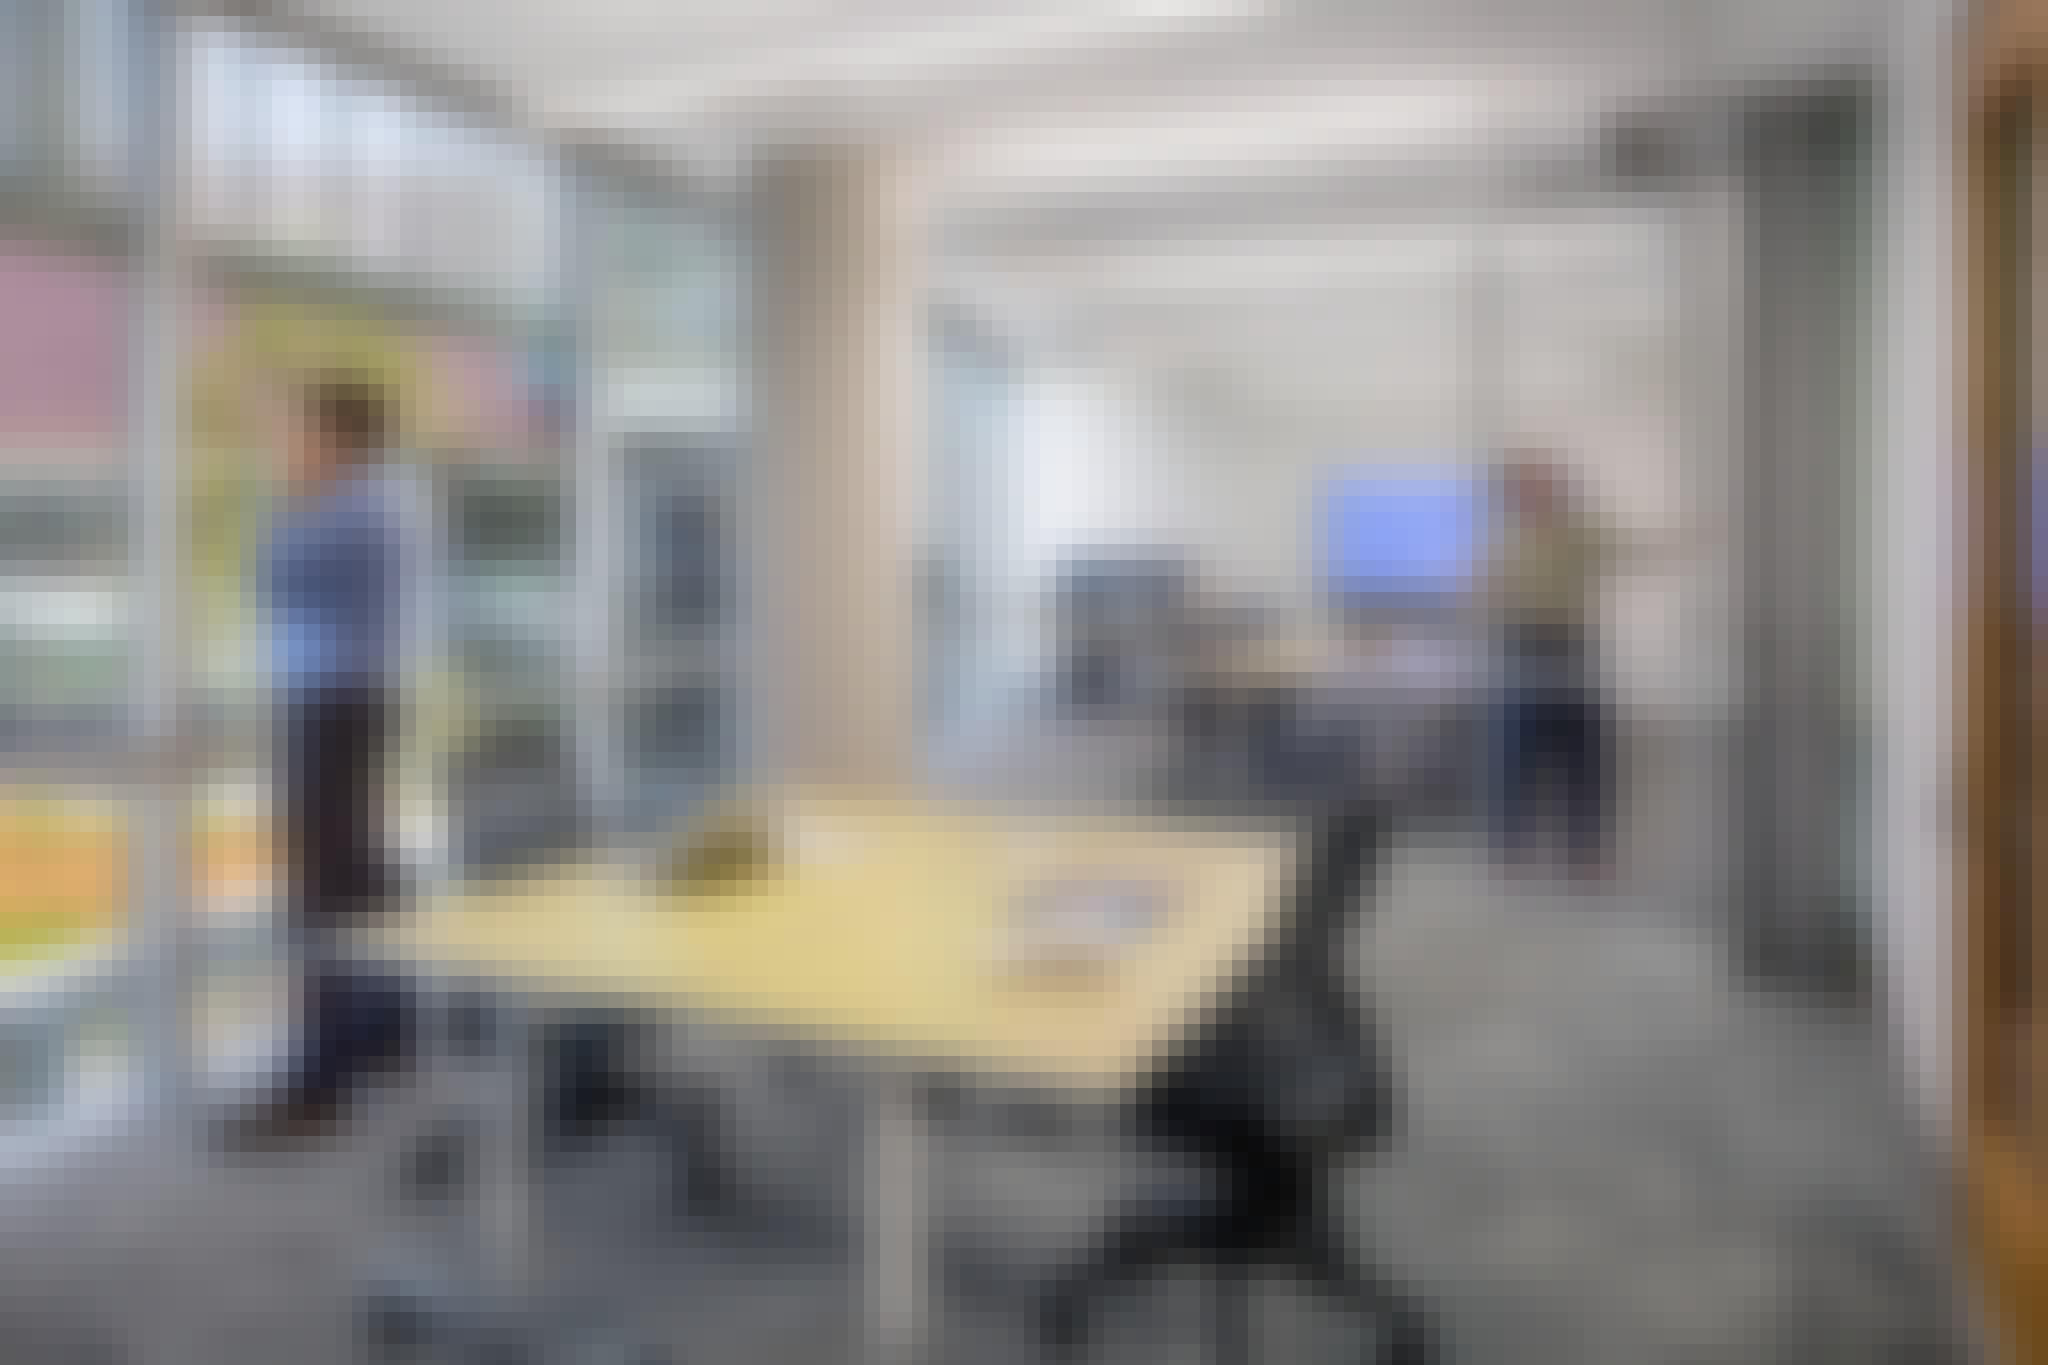 Operable Glass Partition Walls for Office Spaces